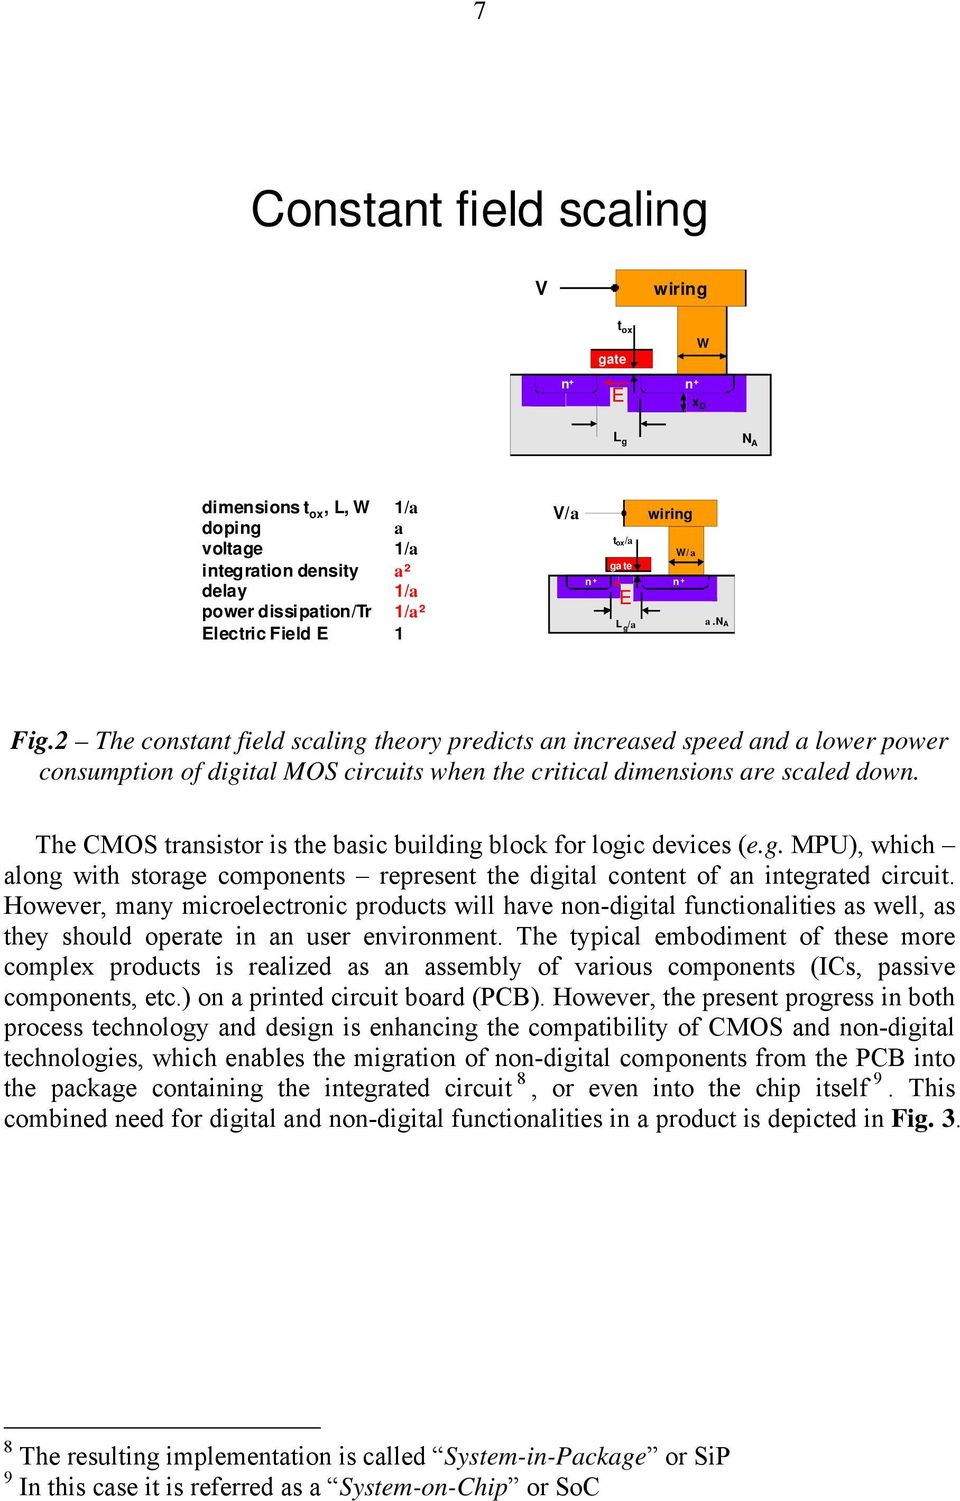 2 The constant field scaling theory predicts an increased speed and a lower power consumption of digital MOS circuits when the critical dimensions are scaled down.